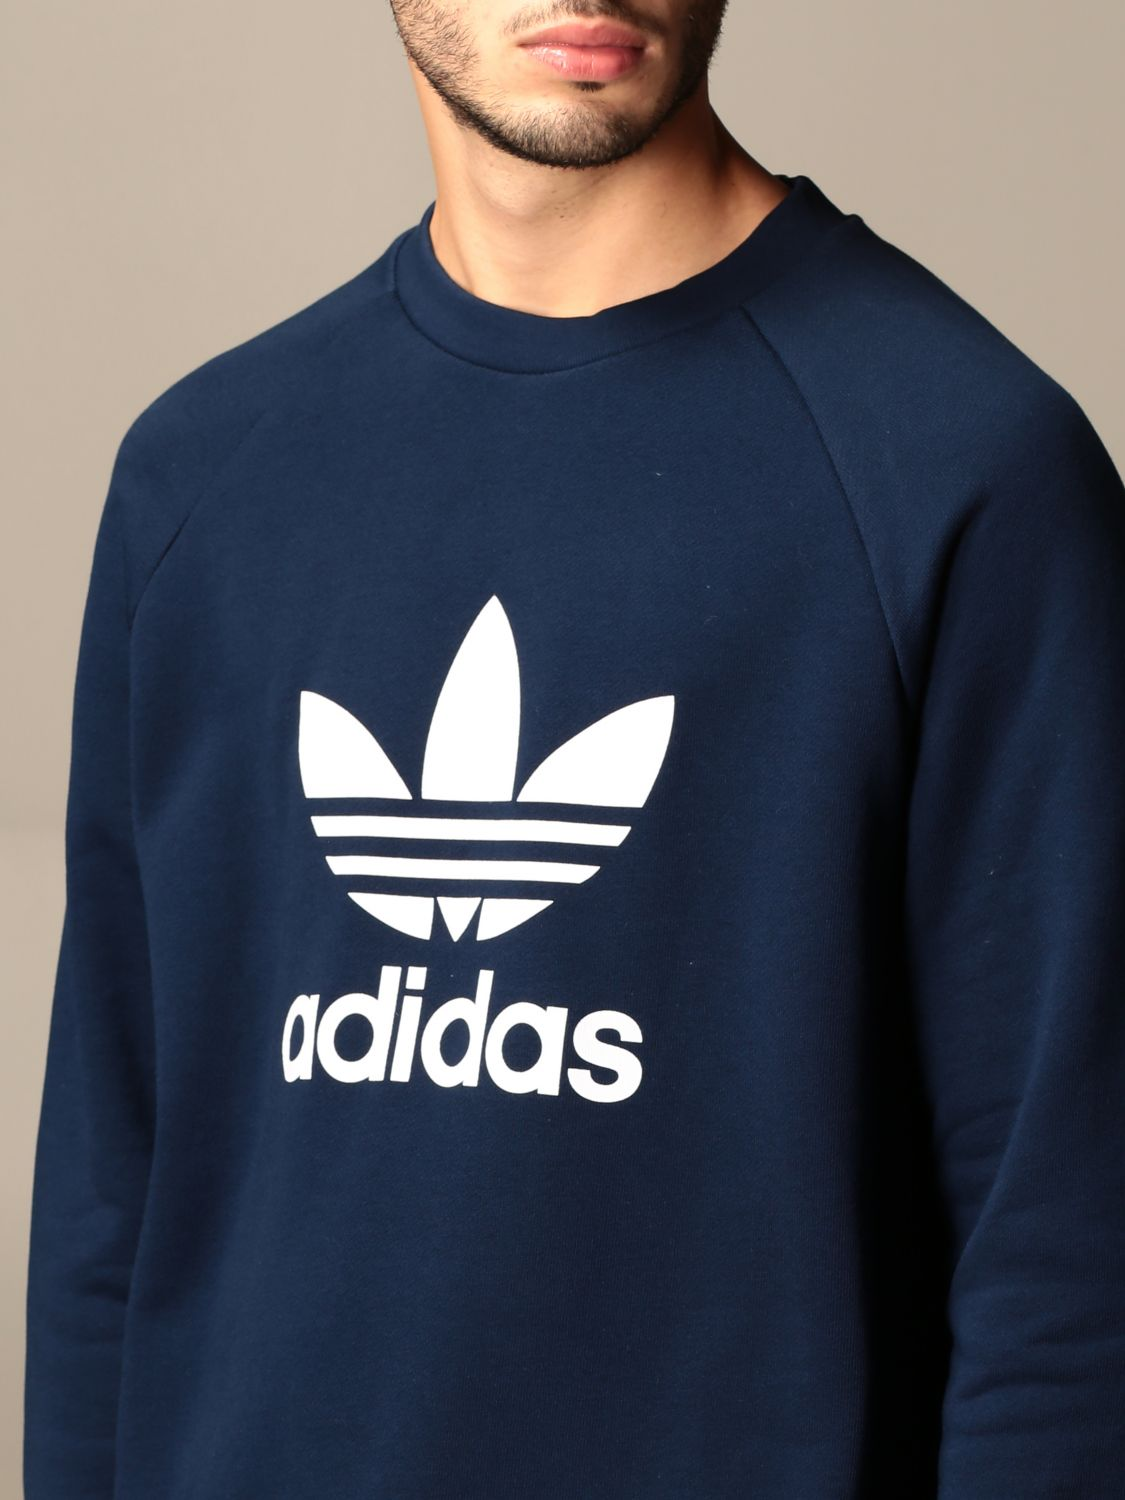 Sweatshirt Adidas Originals: Sweatshirt men Adidas Originals navy 4